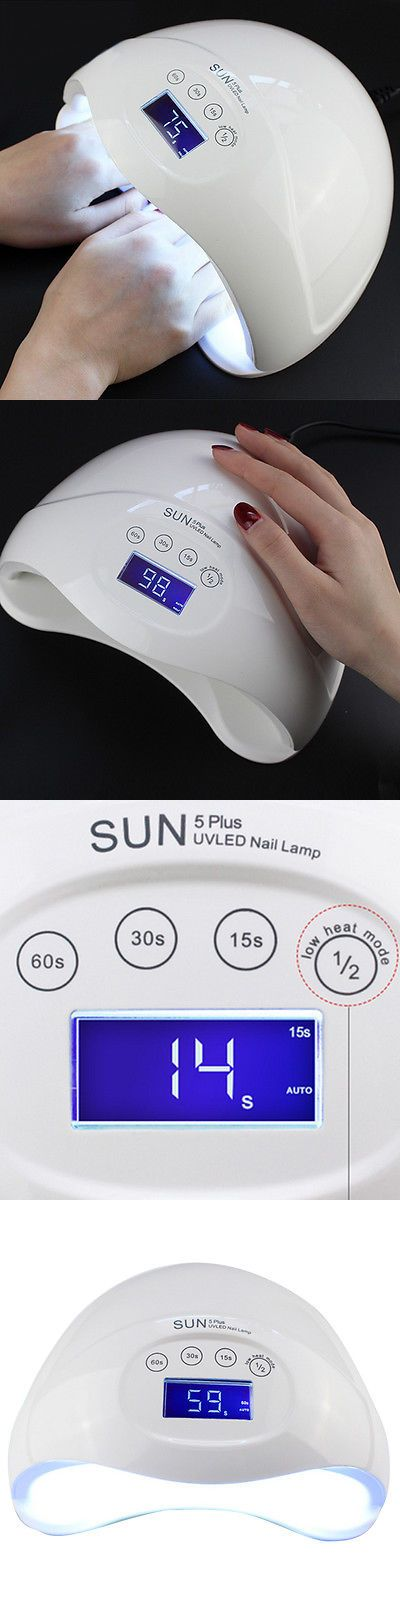 Nail Dryers and UV LED Lamps: Sunuv 48W Sun5 Plus Professional Led Uv Nail Lamp Led Nail Light Nail Dryer Usa -> BUY IT NOW ONLY: $45.49 on eBay!